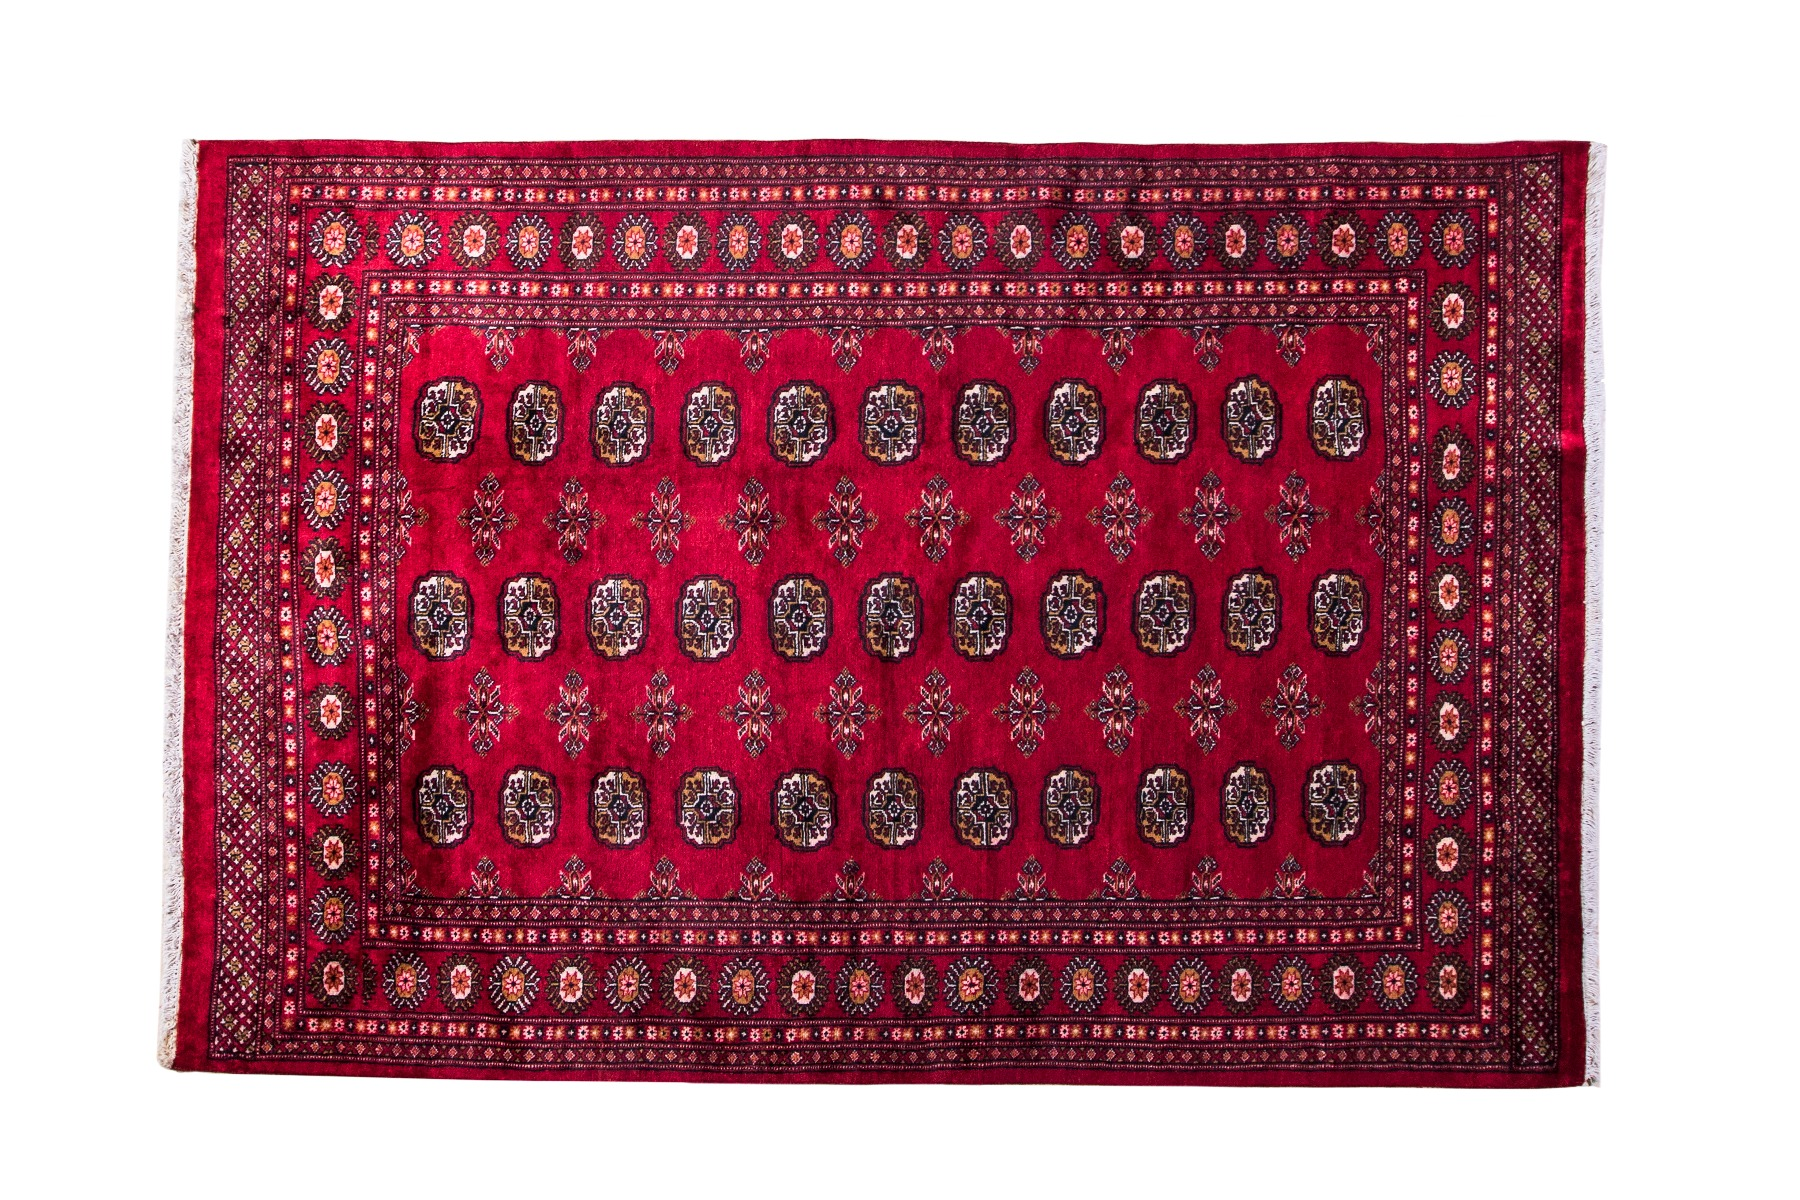 Find out now about the history and patterns of the Oriental Carpets, How it is created and what is the meaning of the woven patterns on them, read more now.